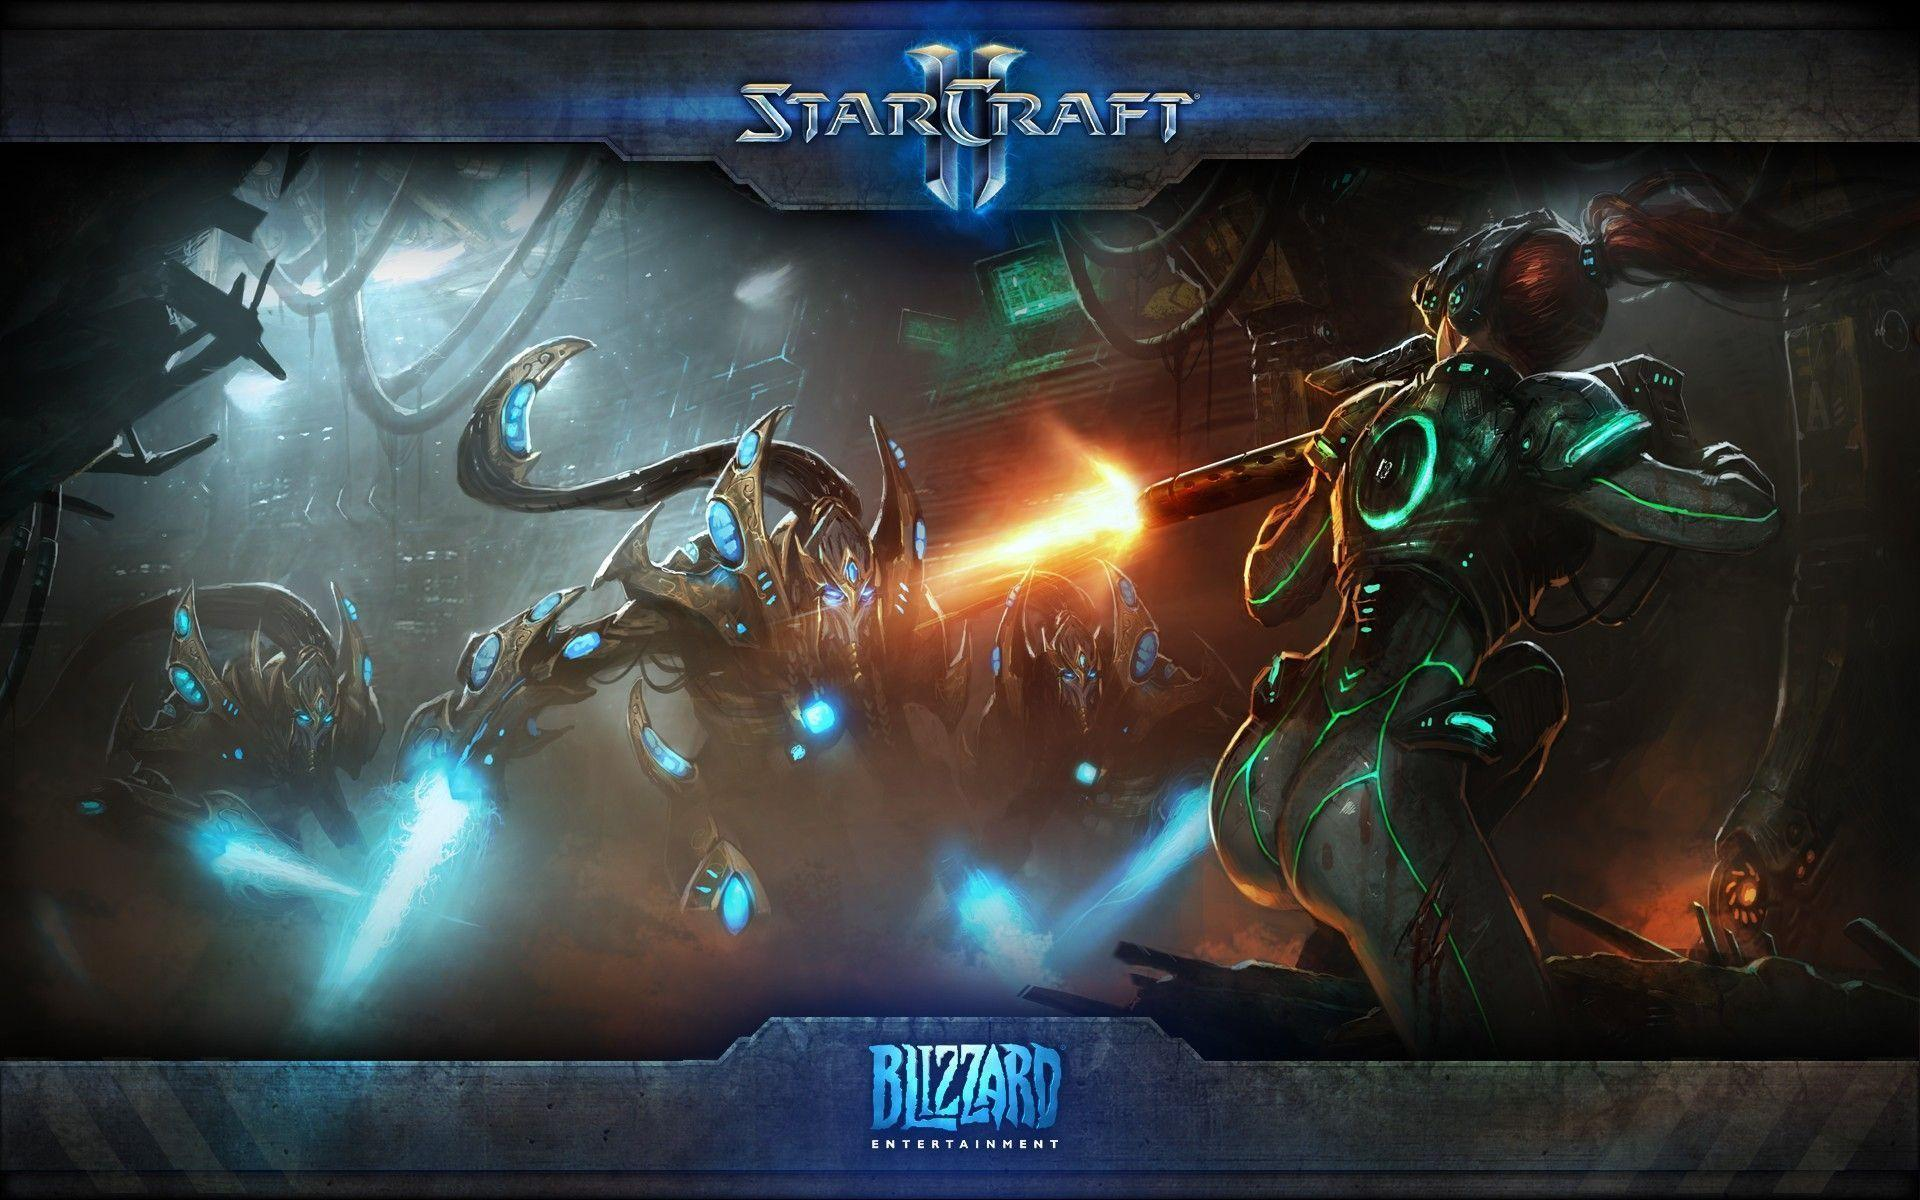 Blizzard Starcraft 2 Wallpaper